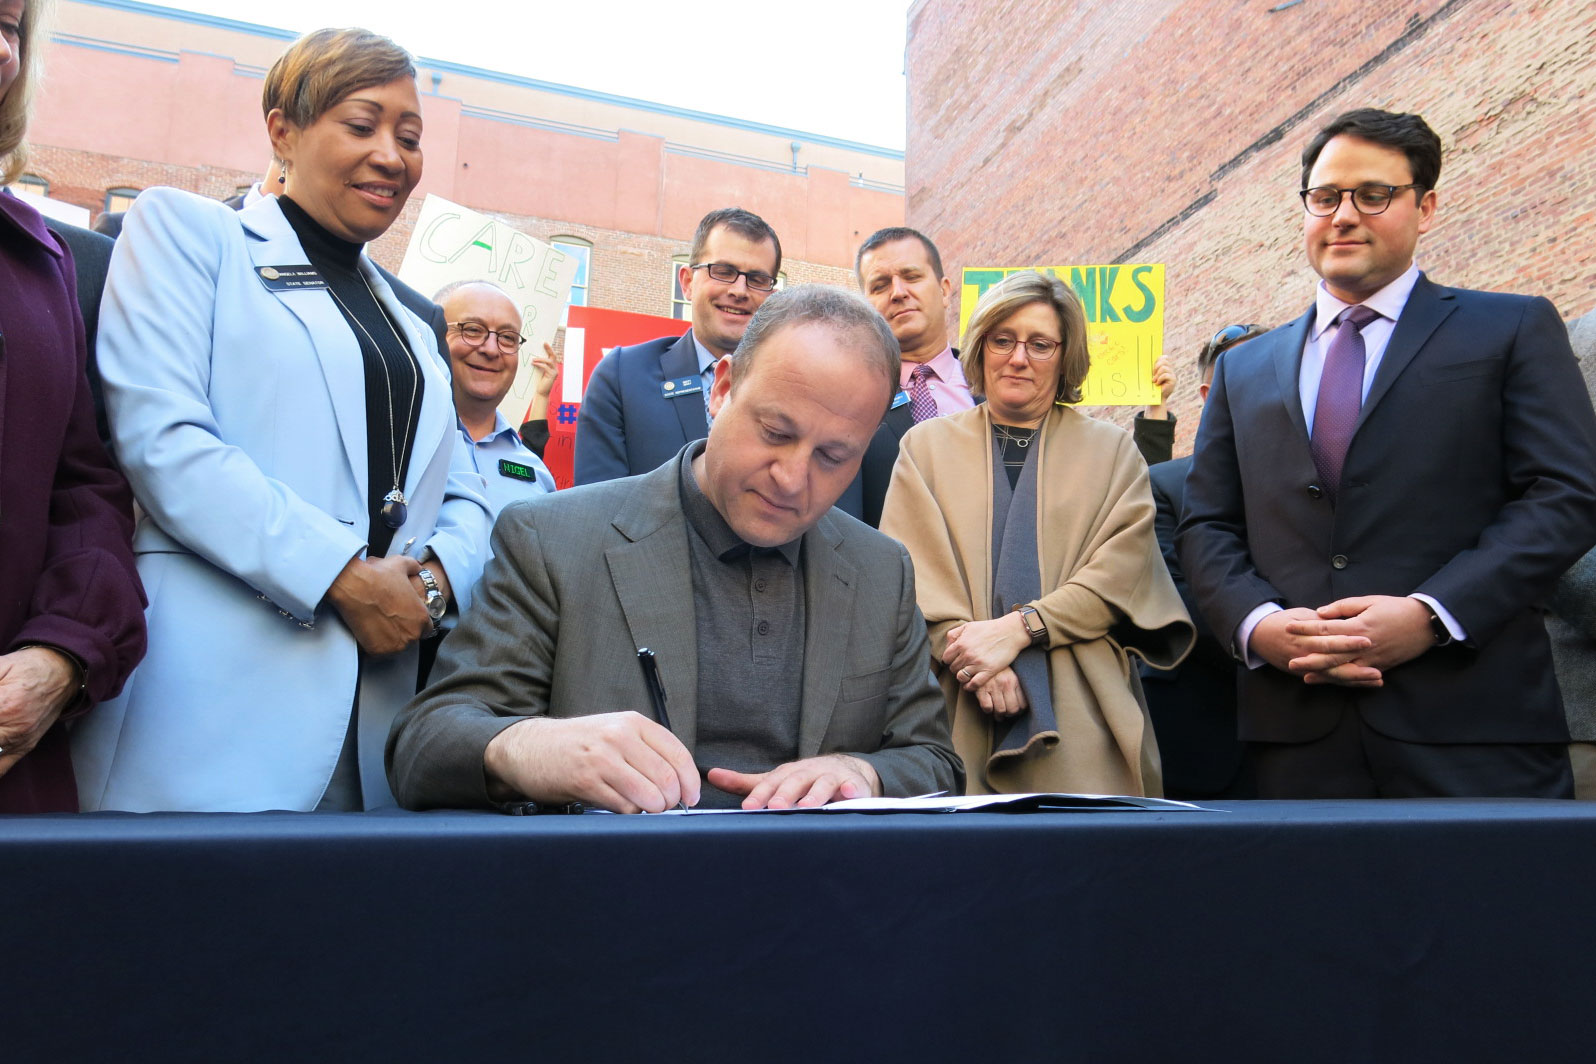 <p>Gov. Jared Polis signs his first environmental executive order on Thursday, Jan. 17, 2019,to put more electric cars and buses on the road. He's flanked by state representatives and leaders of environmental groups.</p>